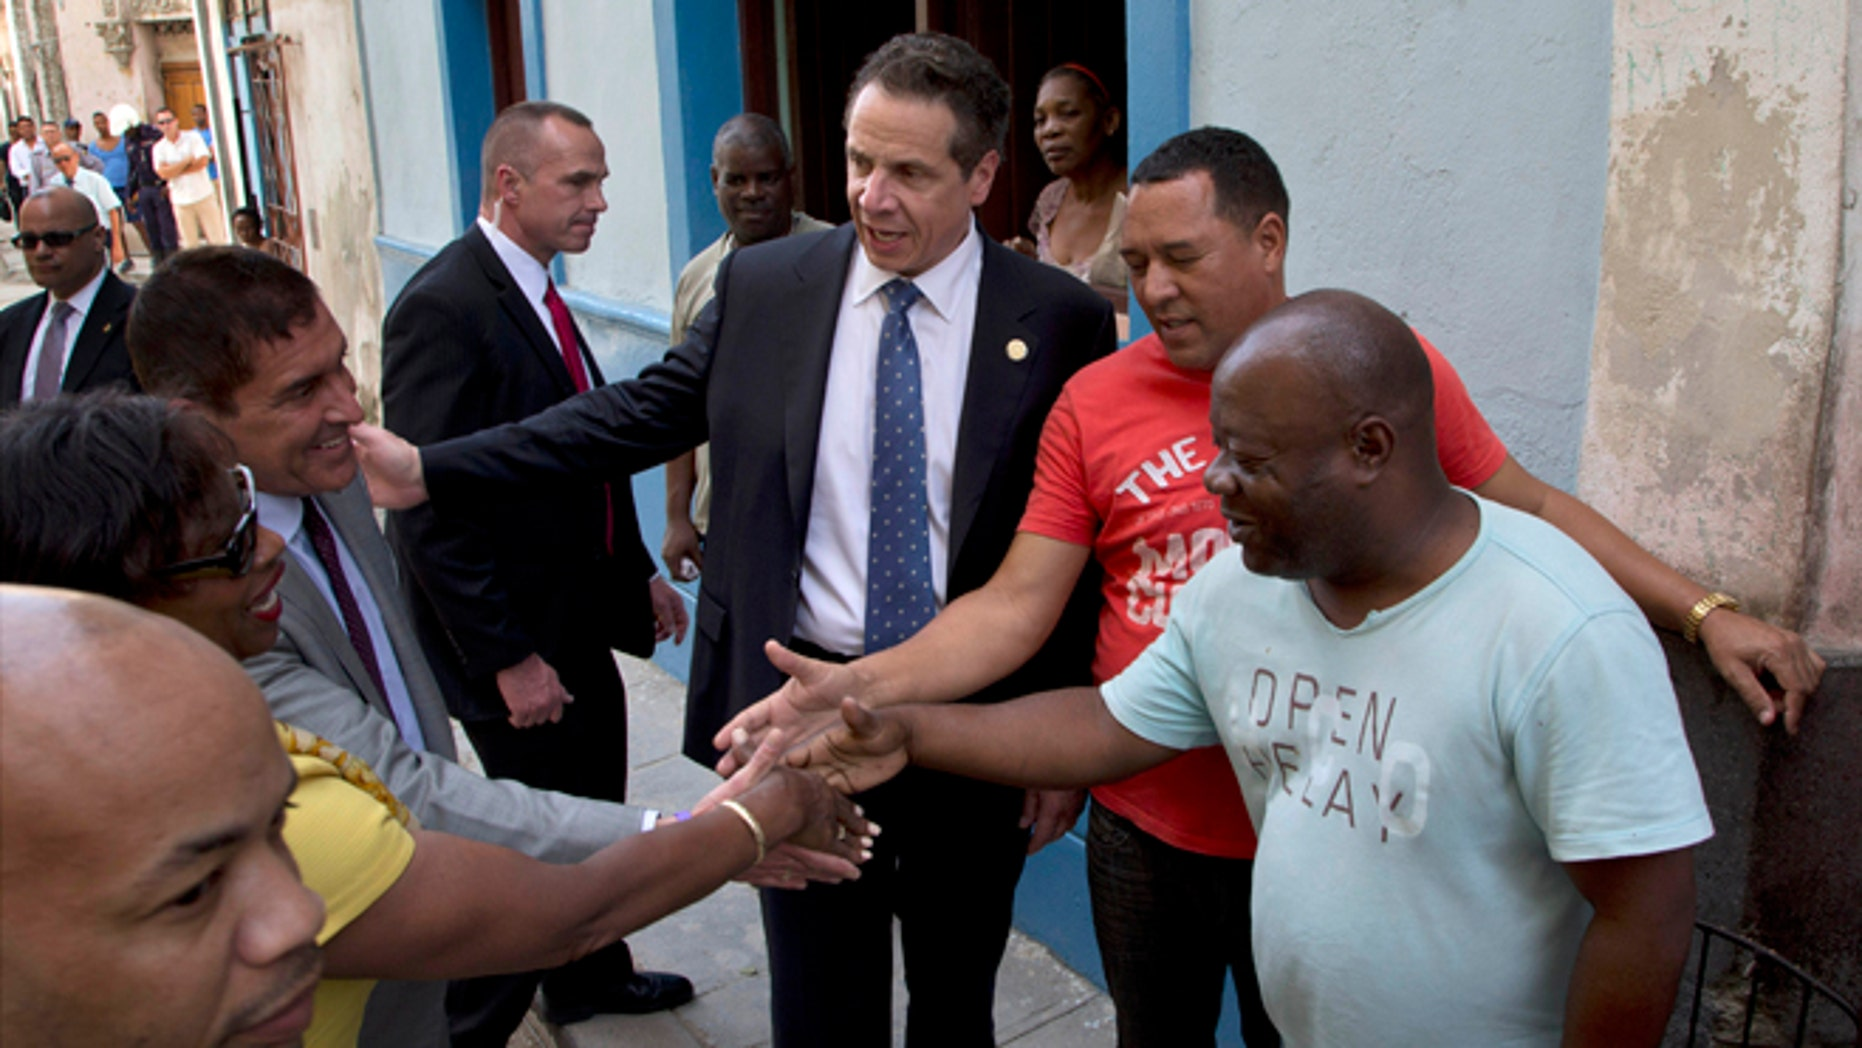 New York Governor Andrew Cuomo, center, introduces New York politicians to Cuban citizens on a street in old Havana, Cuba, Monday, April 20, 2015. From left are Carl E. Heastie, speaker of the New York Assembly, New York State Senator Andrea Stewart-Cousins and New York State Senator Jeff Klein. The formal state visit, a trip that makes Cuomo the first American governor to visit the island since the recent thaw in relations with the communist nation, is meant to foster greater ties between New York and Cuba. (AP Photo/Ramon Espinosa)